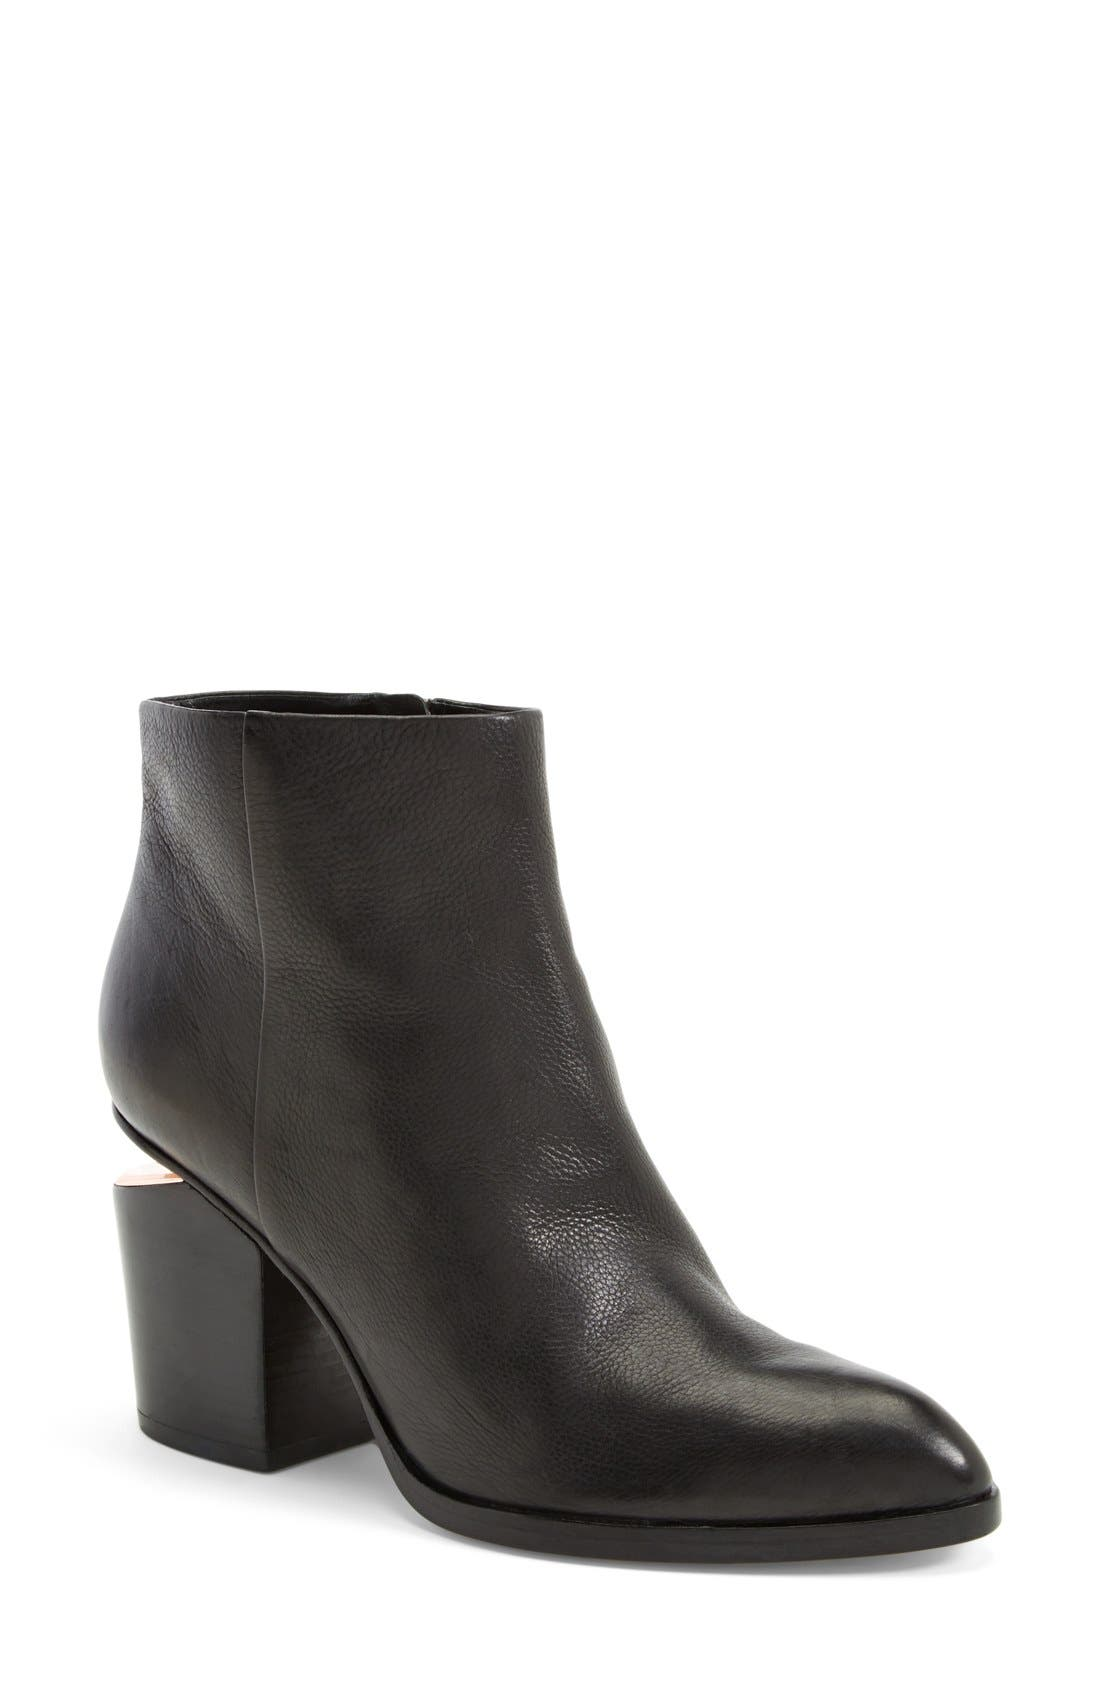 Gabi Bootie,                             Main thumbnail 1, color,                             BLACK LEATHER